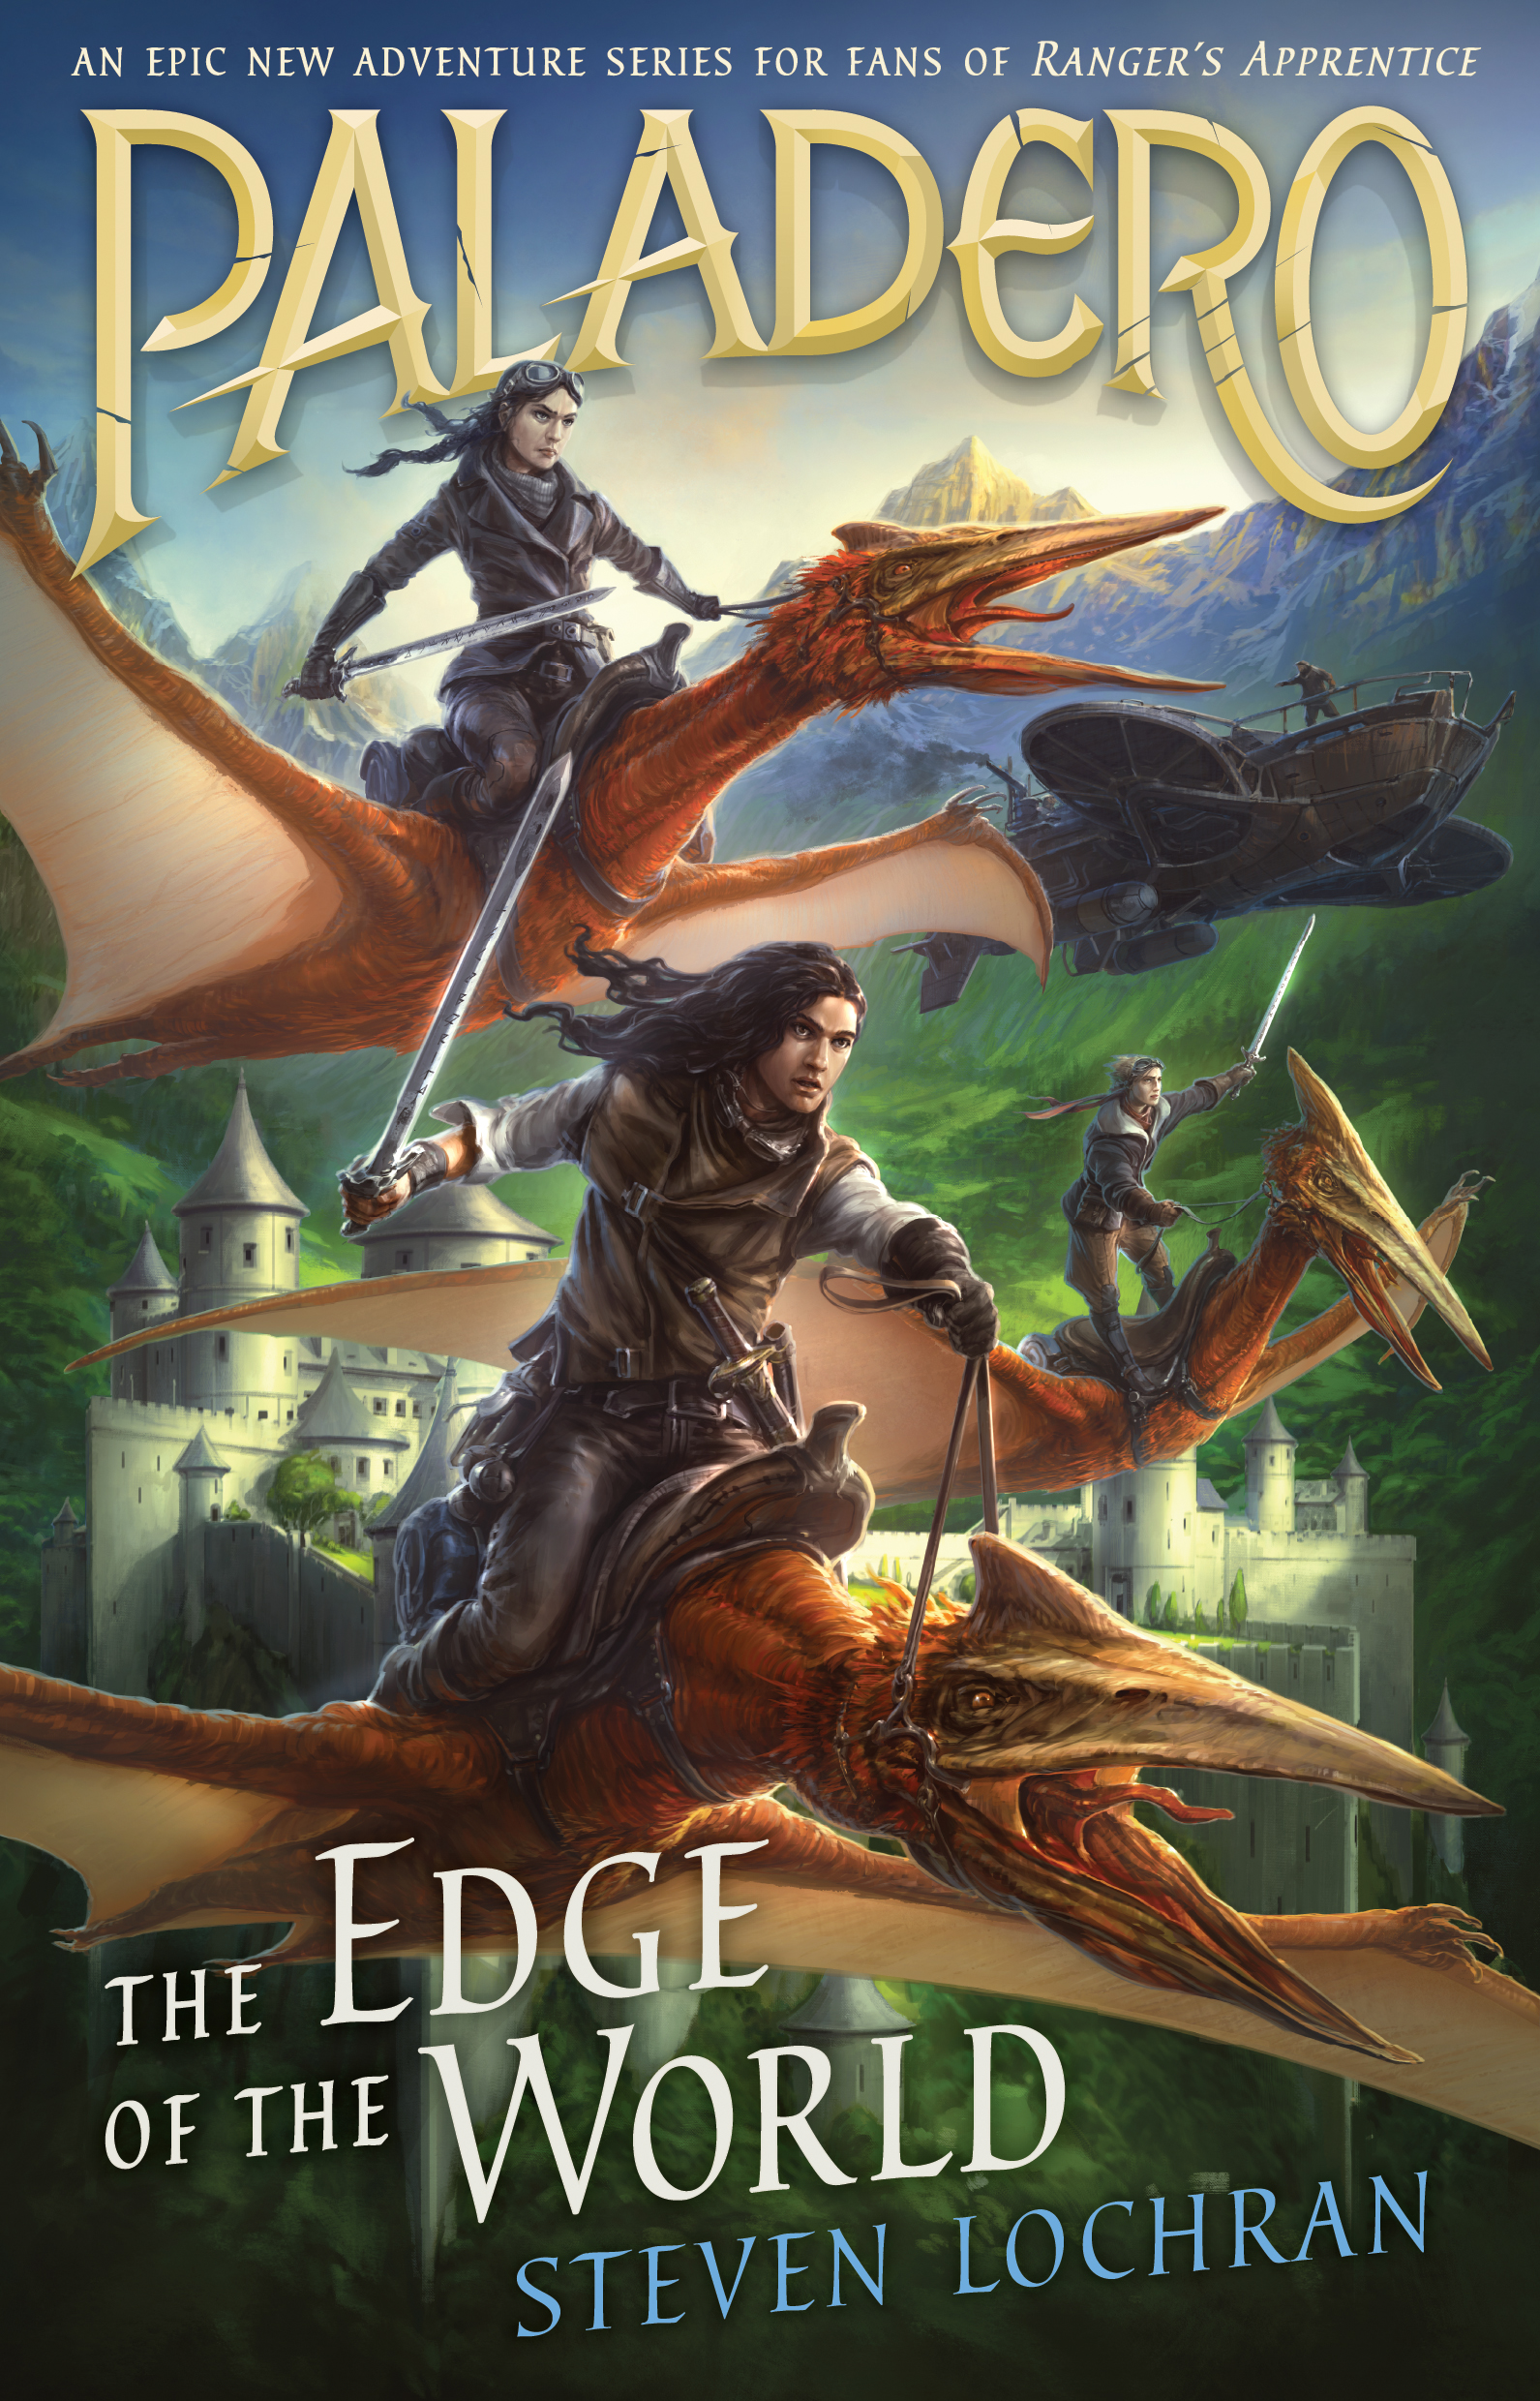 Edge of the World FRONT COVER 300dpi RGB